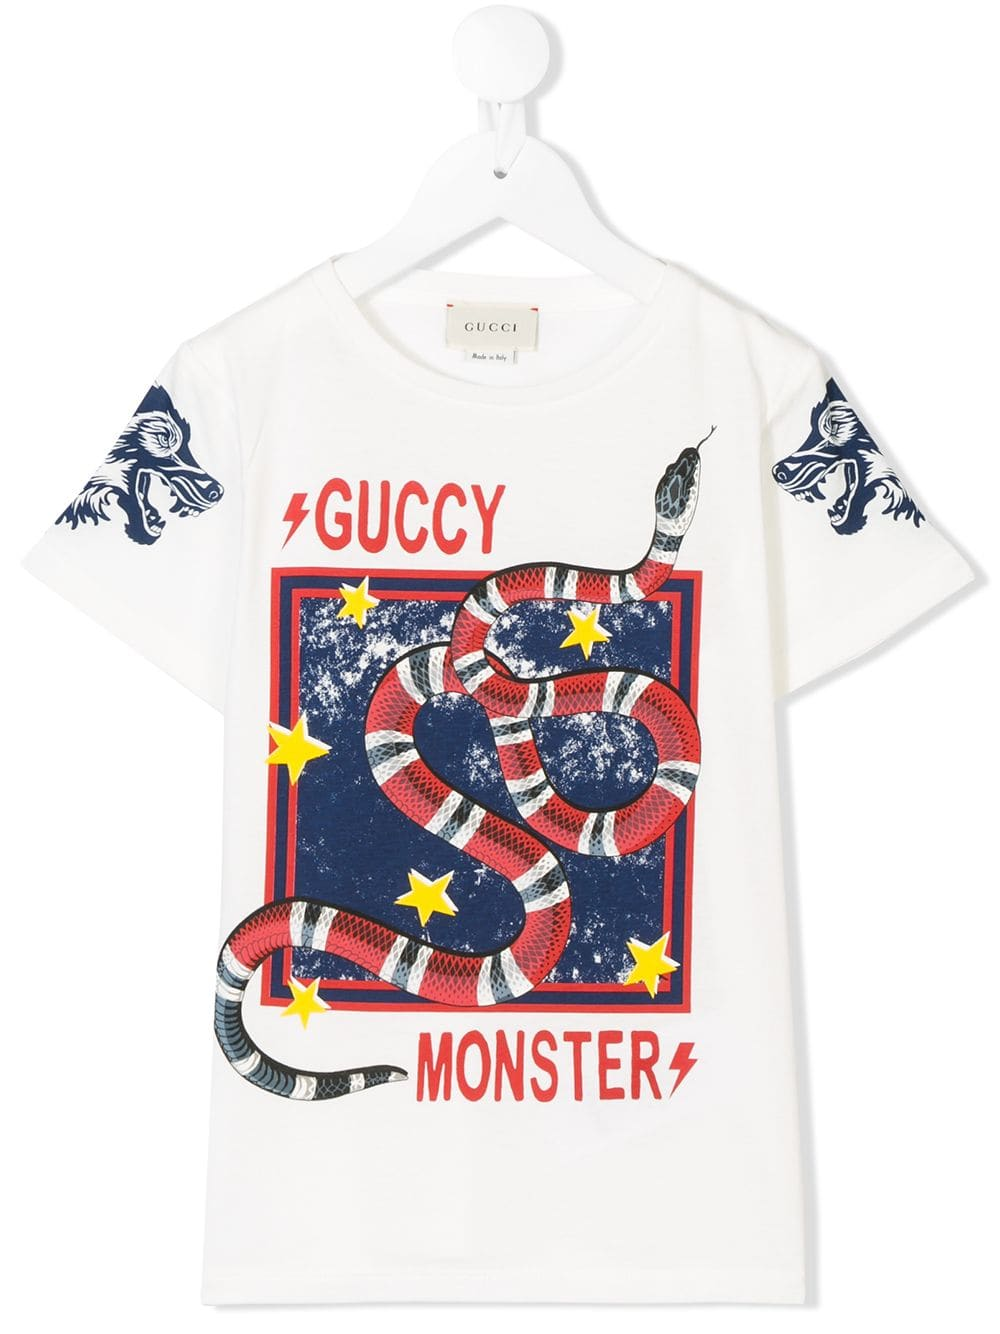 a49cd3411 Gucci Kids Guccy Monster T-shirt - White in 2019 | Products | Gucci ...